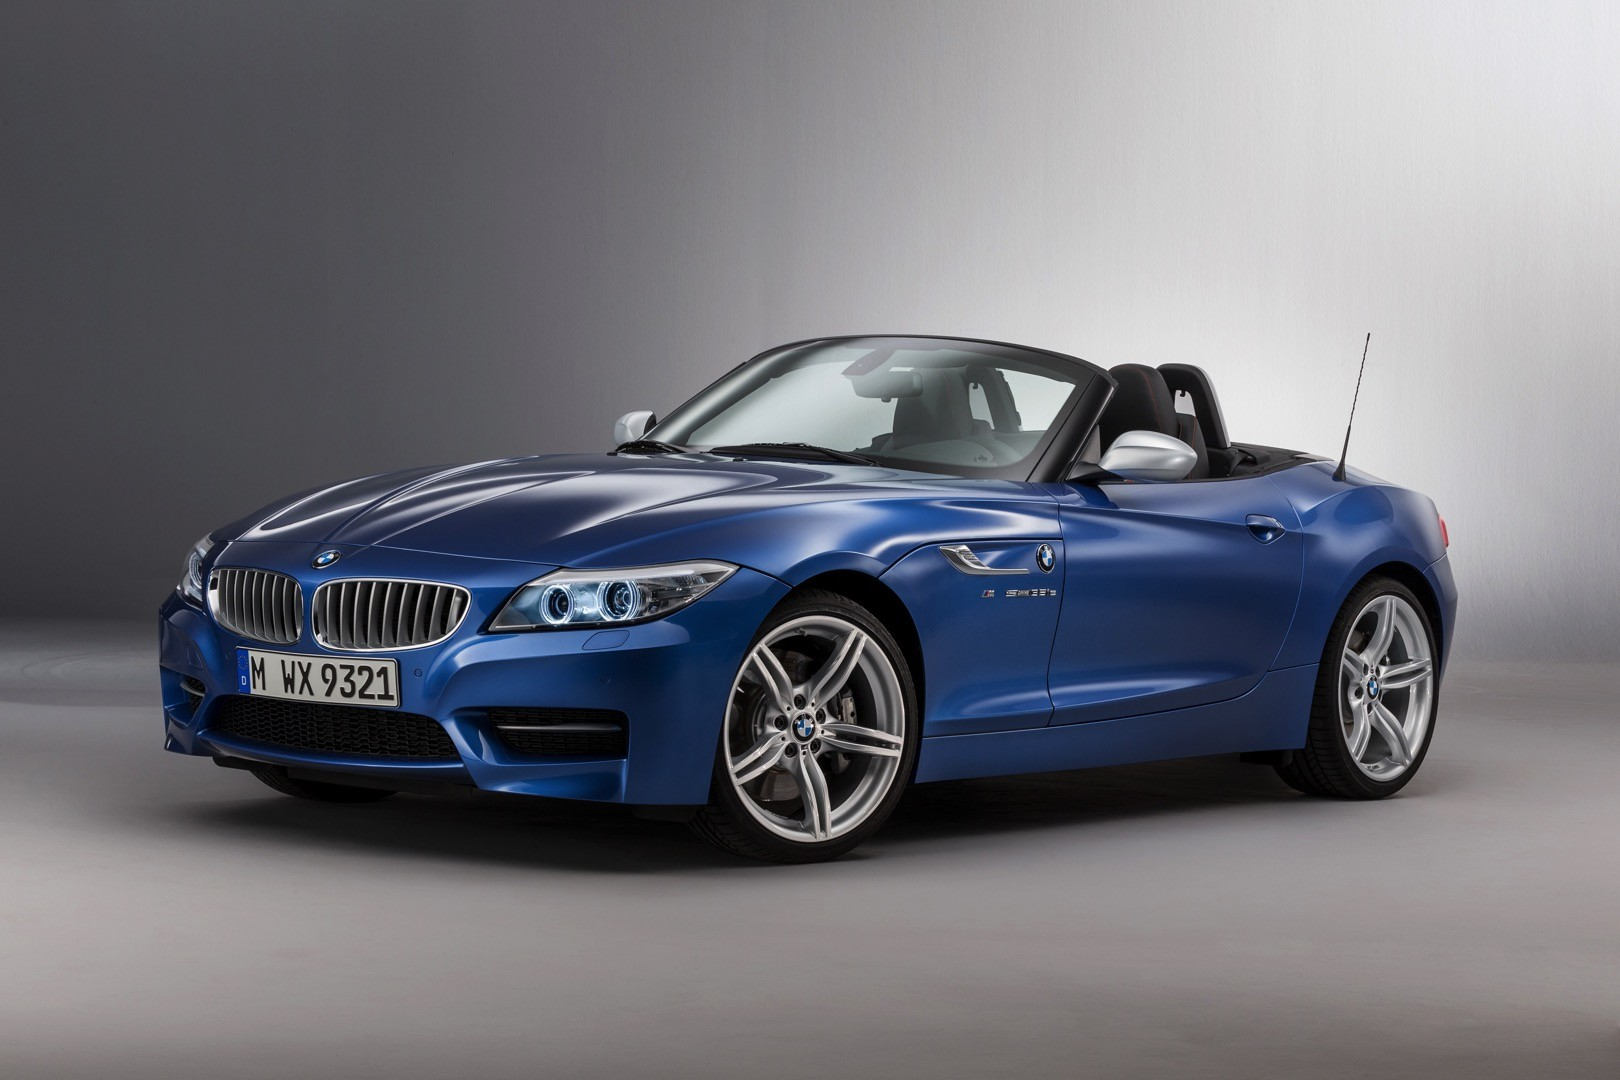 New Colors Available For The Bmw Range Starting The Second Half Of The Year Autoevolution